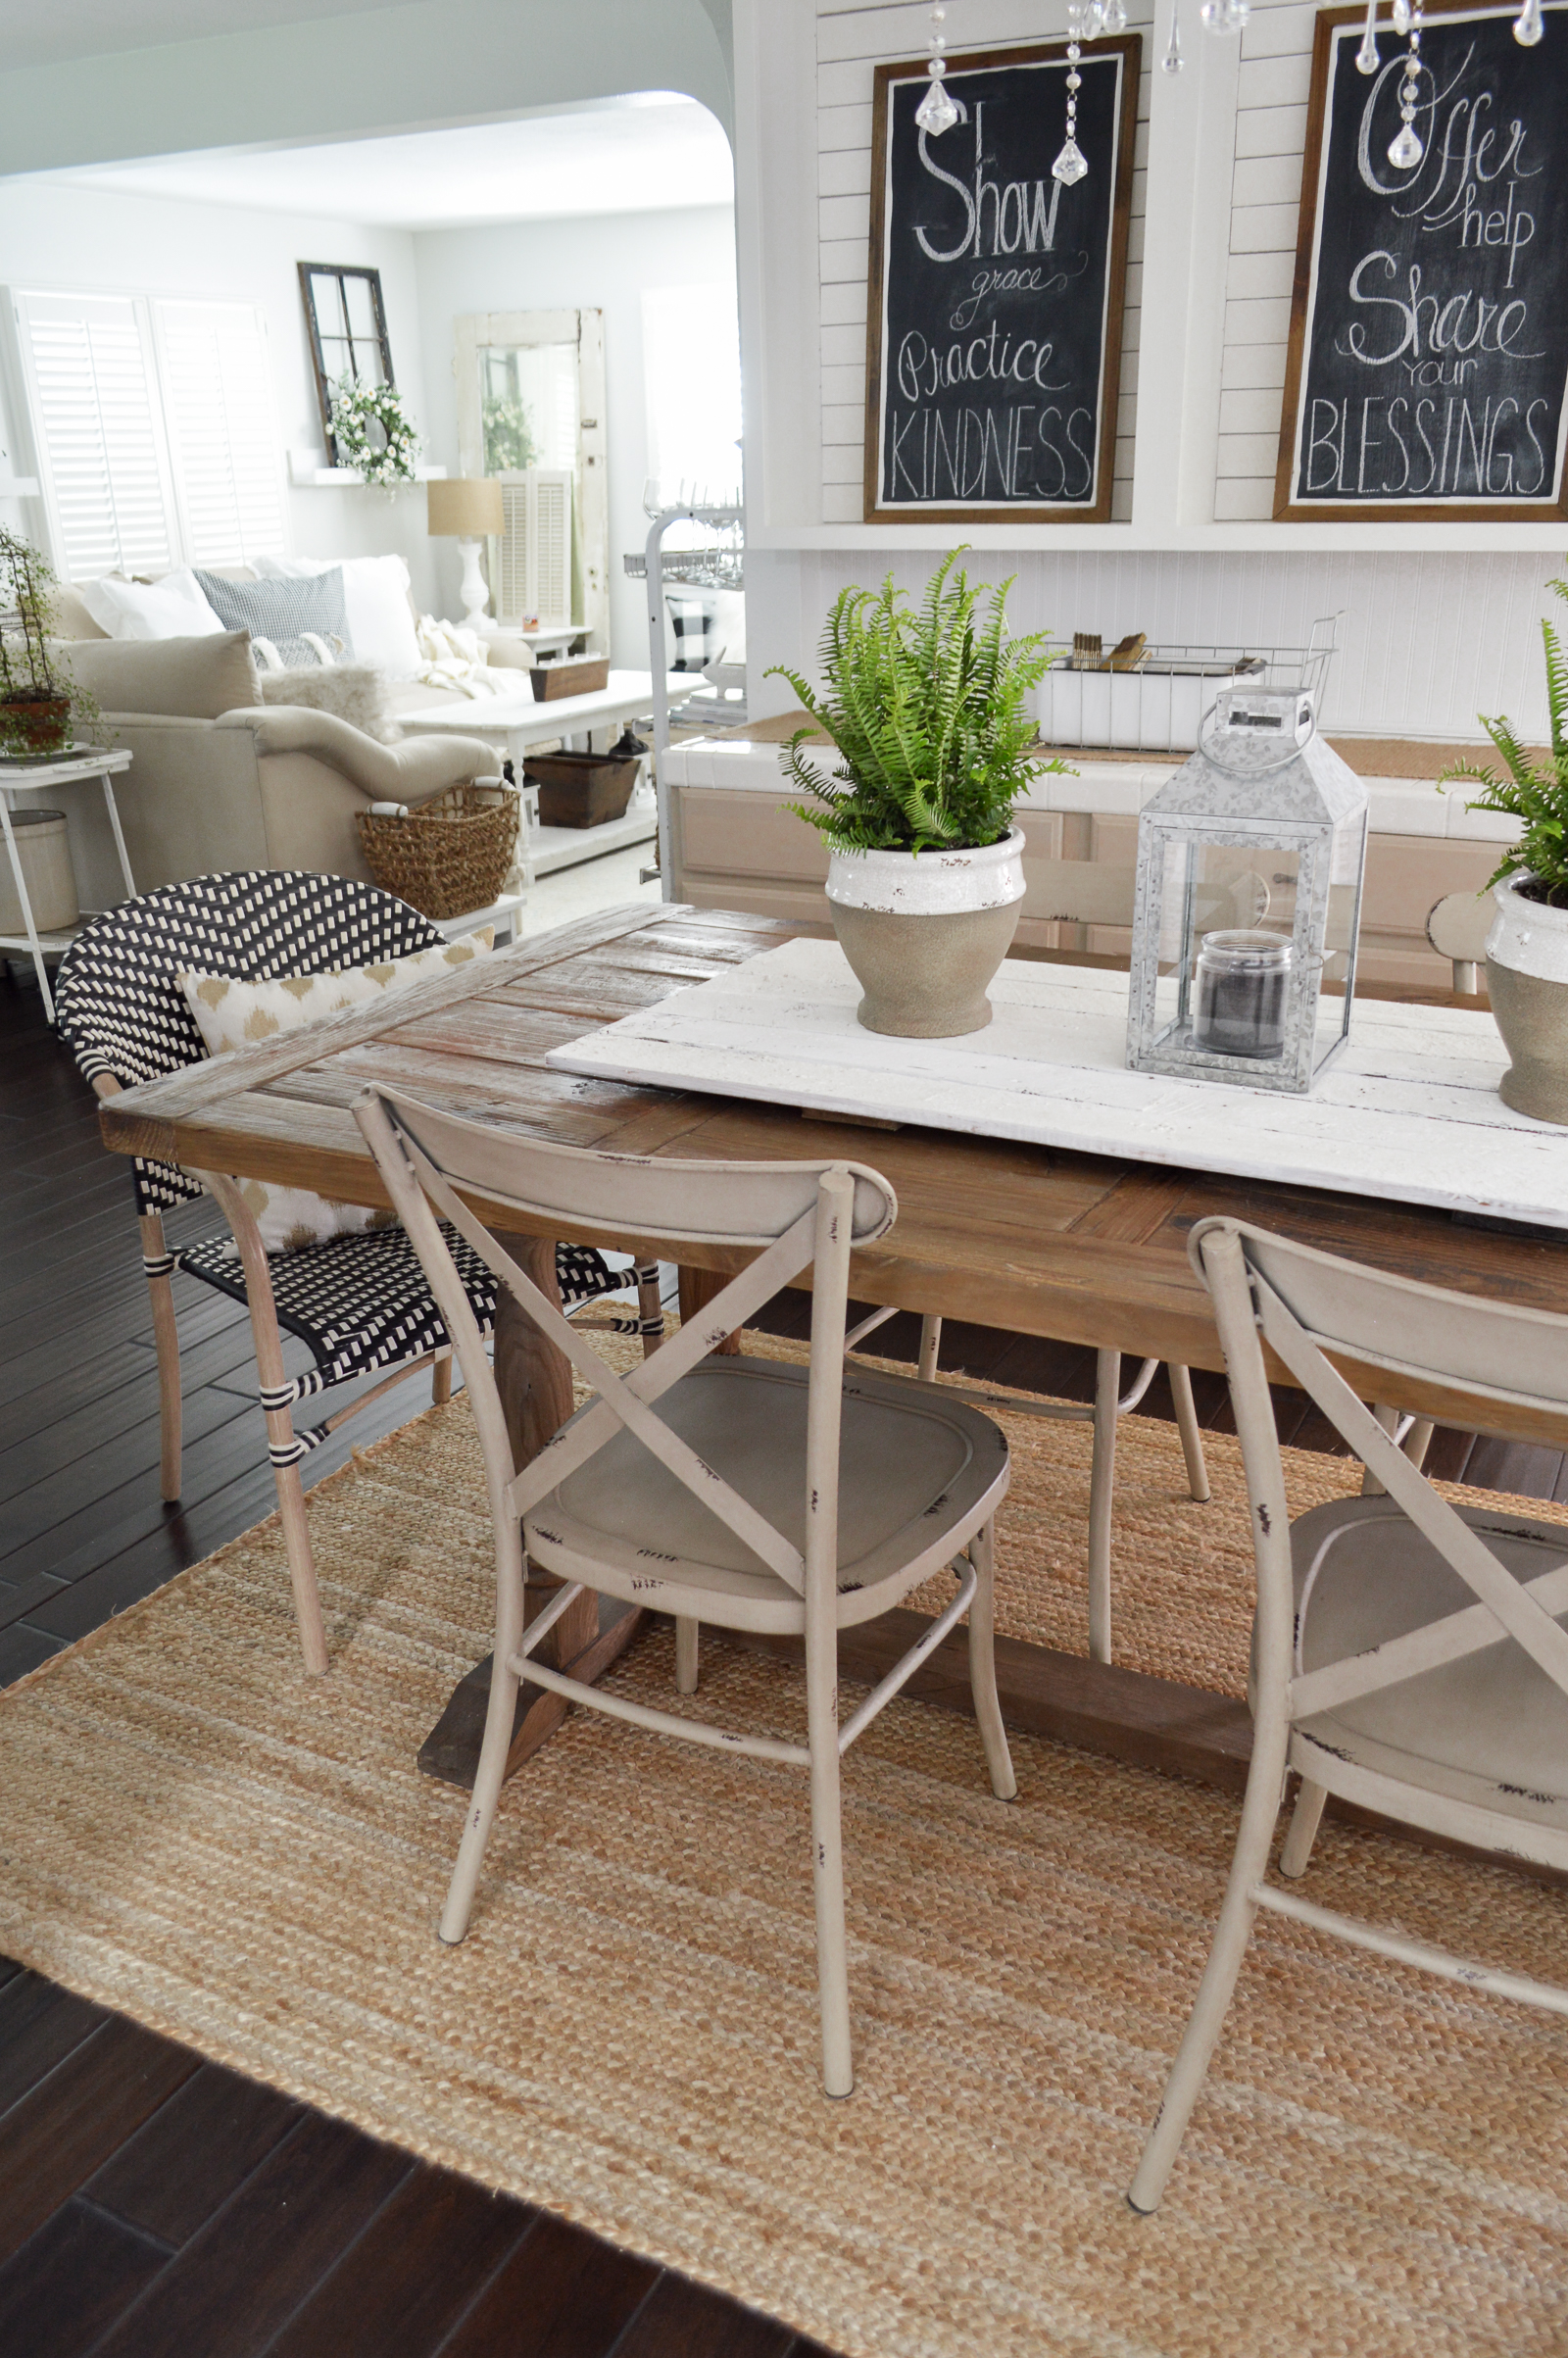 Outdoor In Spring Home Decor and Furniture Ideas #sponsored with Better Homes & Gardens at Walmart | Eclectic farmhouse style boho parisian bistro chairs, farm table, shiplap, wood floors